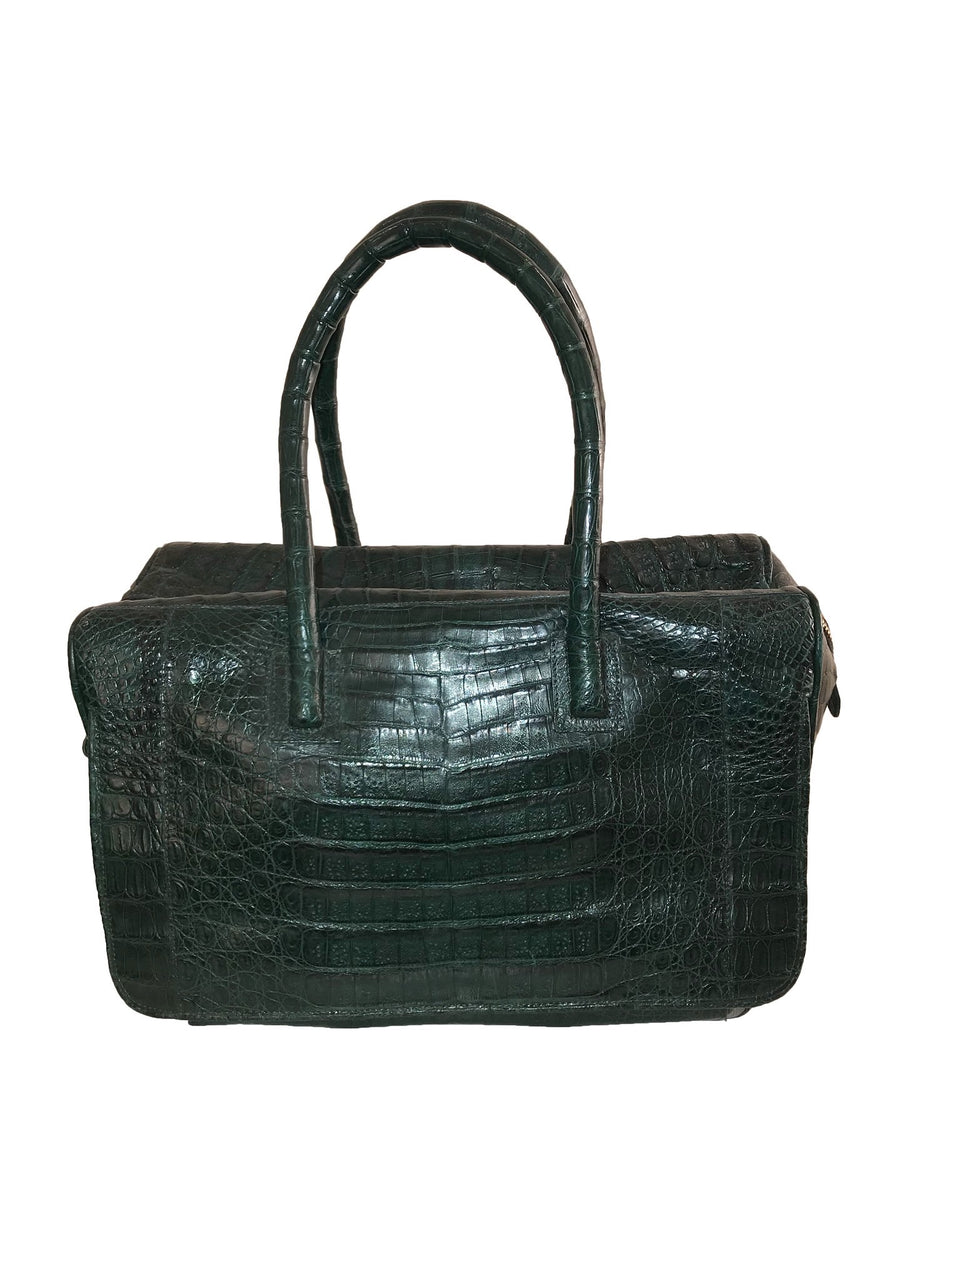 Green Croc Handle Bag